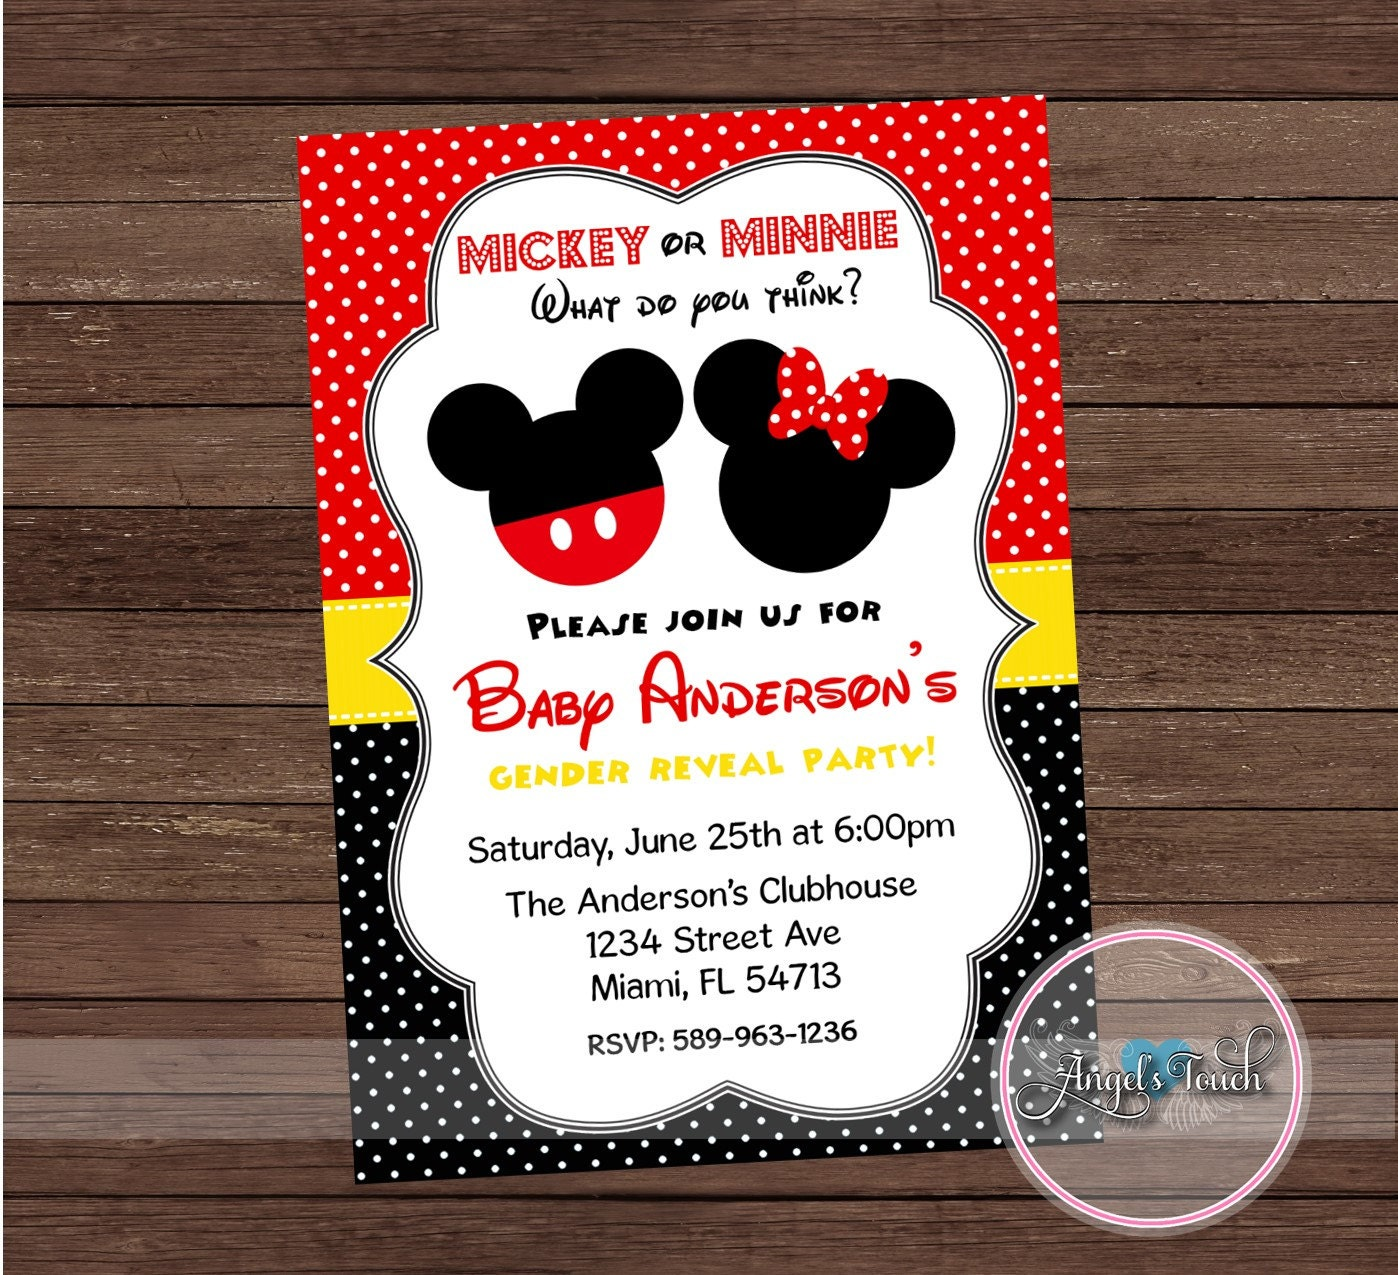 Mickey and Minnie Mouse Gender Reveal Party Invitation | Etsy